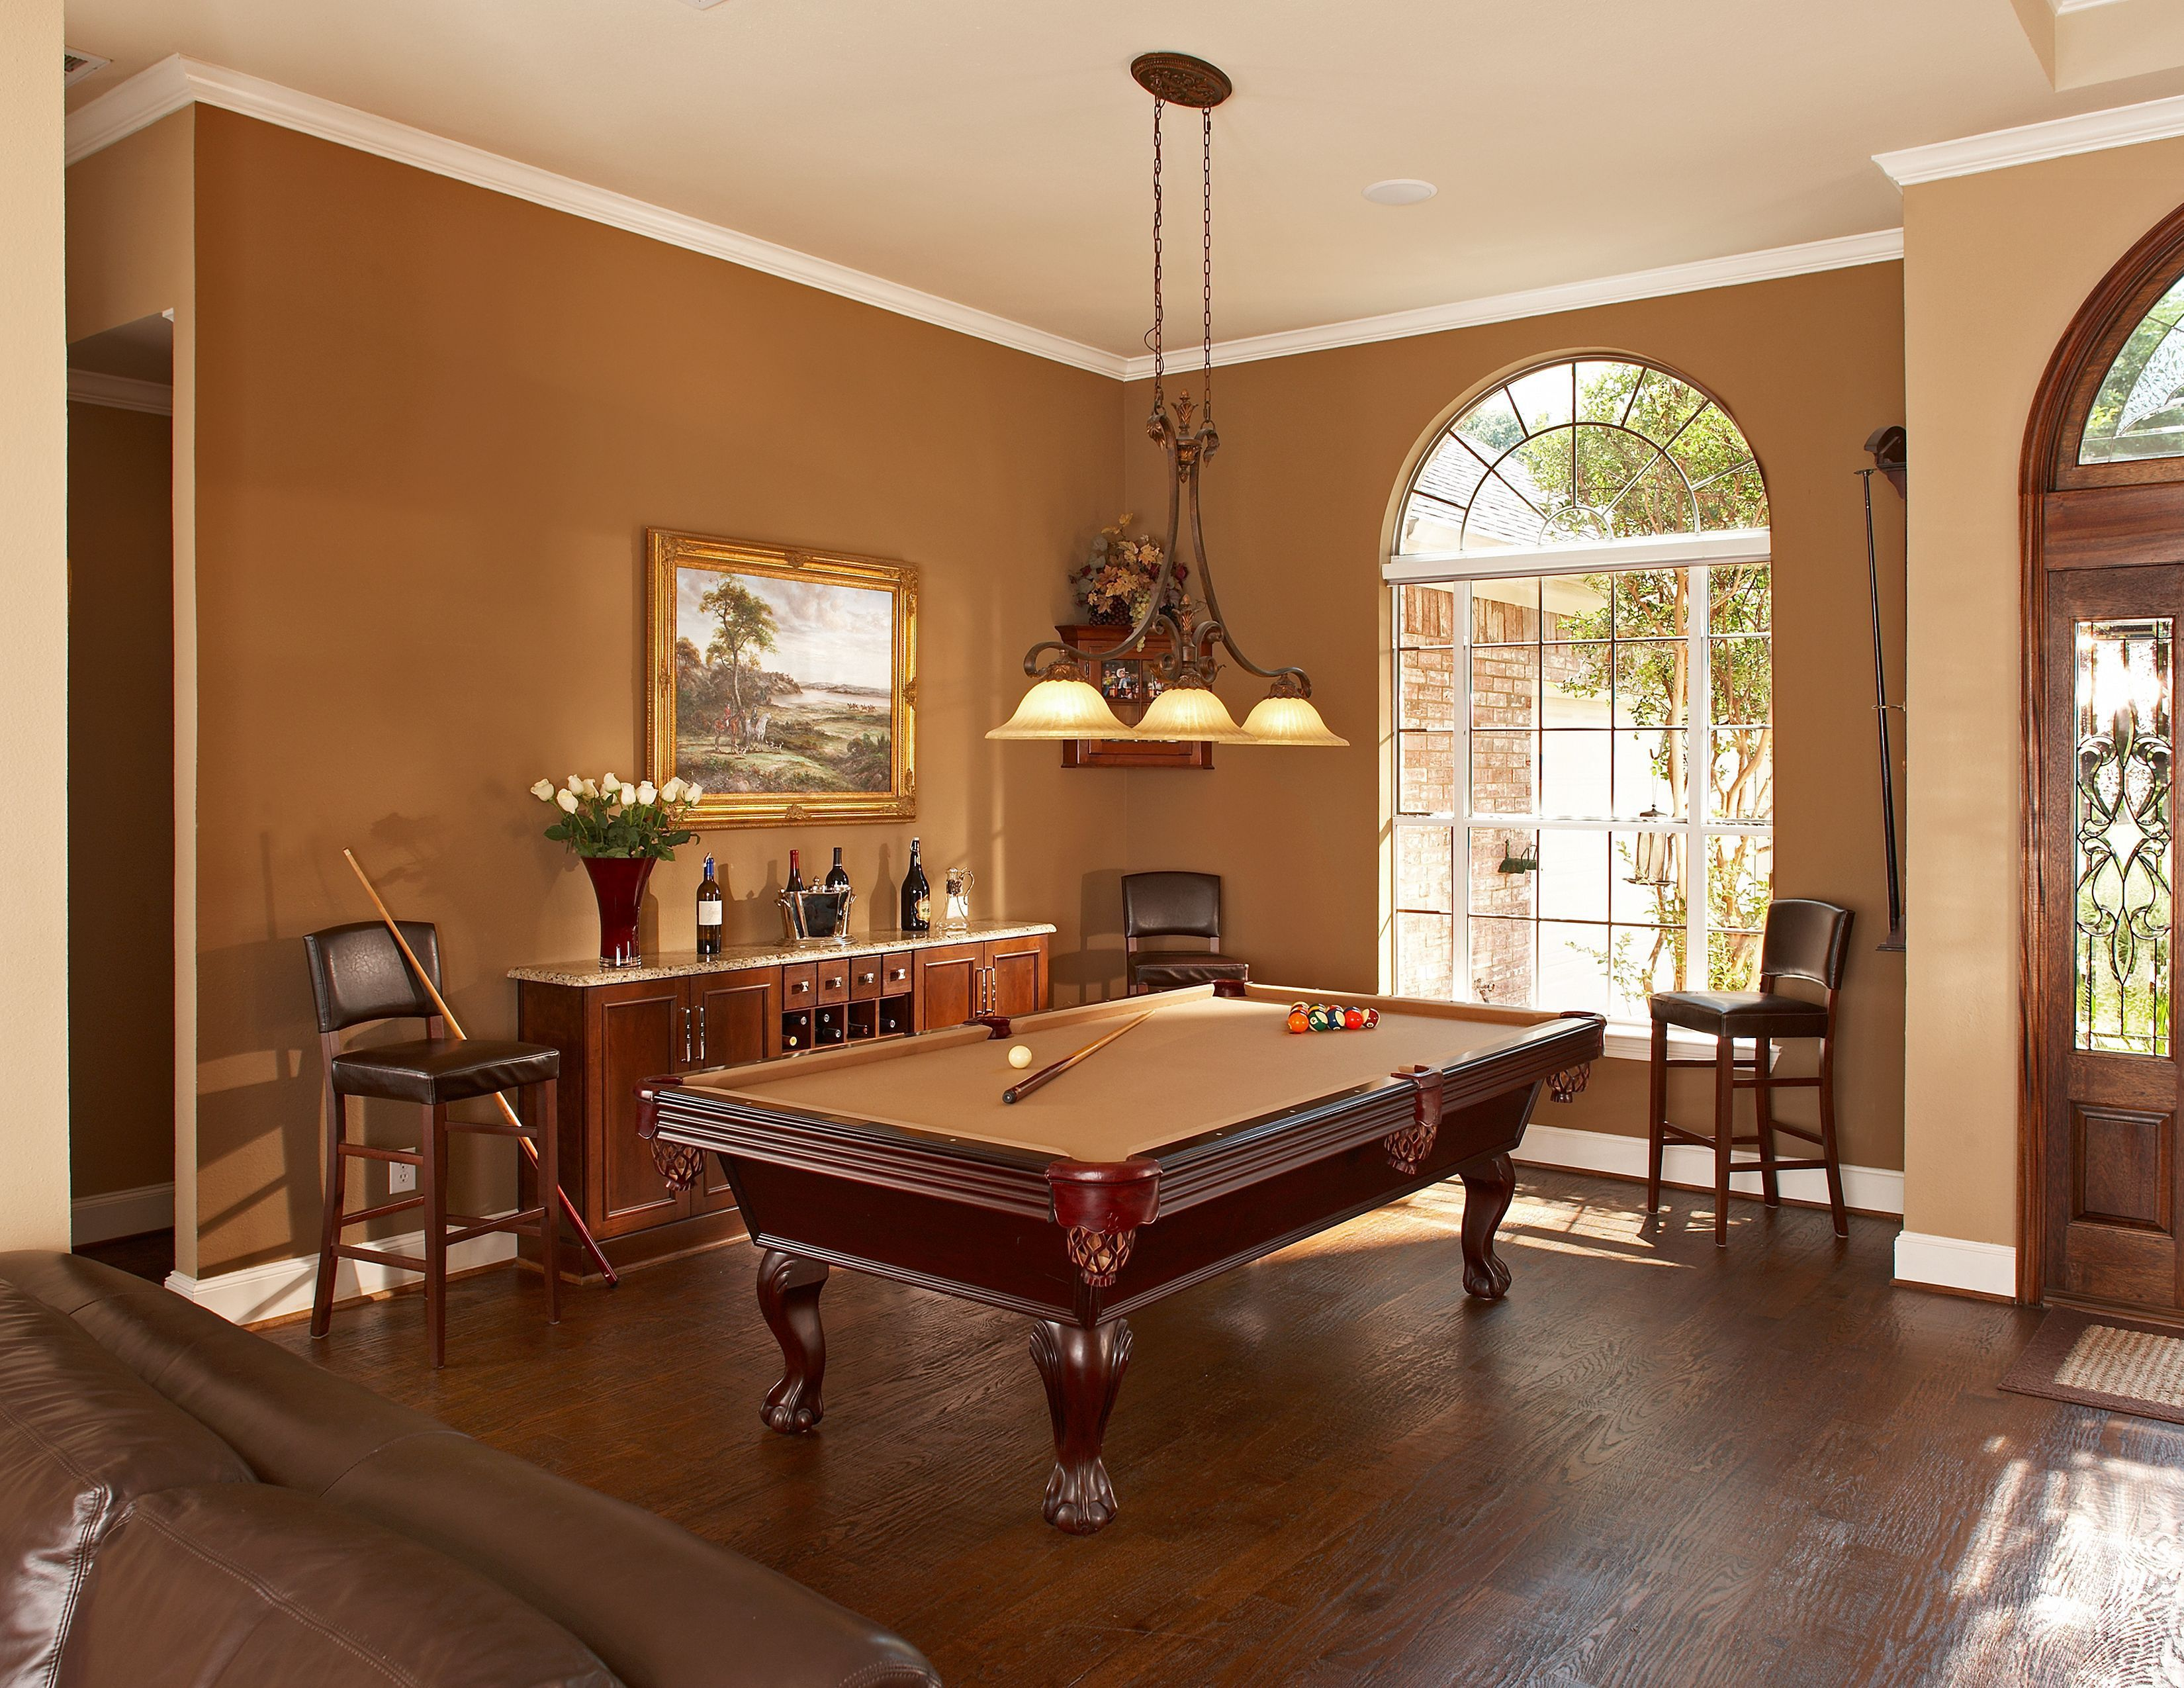 Ready To Design A Home Addition Look Through These Home Addition Design Photos Then Call Servant Remodelin Pool Table Room Billard Room Pool Table Room Decor